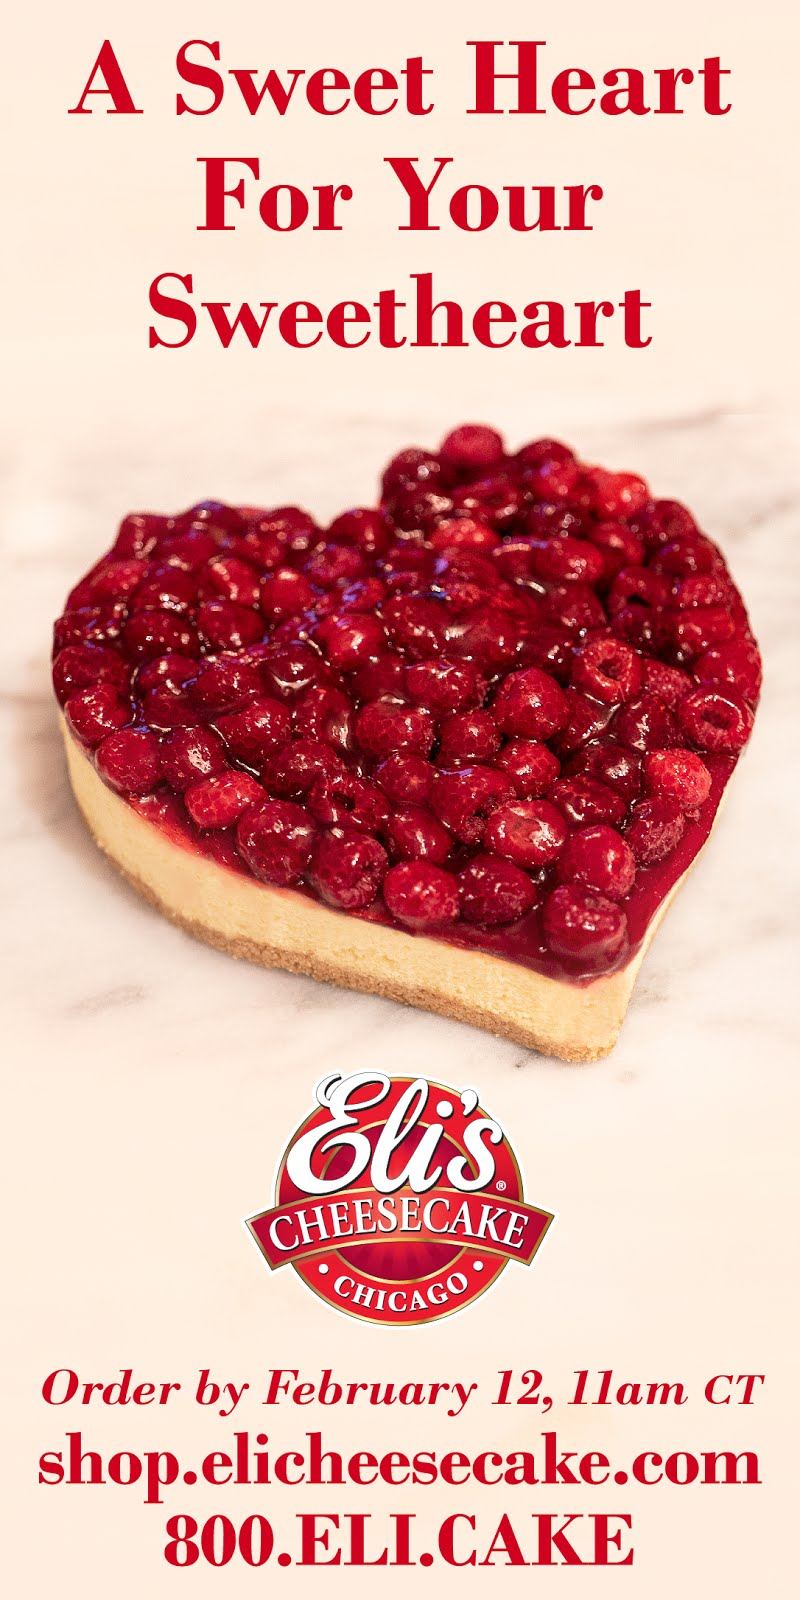 Show your love with Eli's!